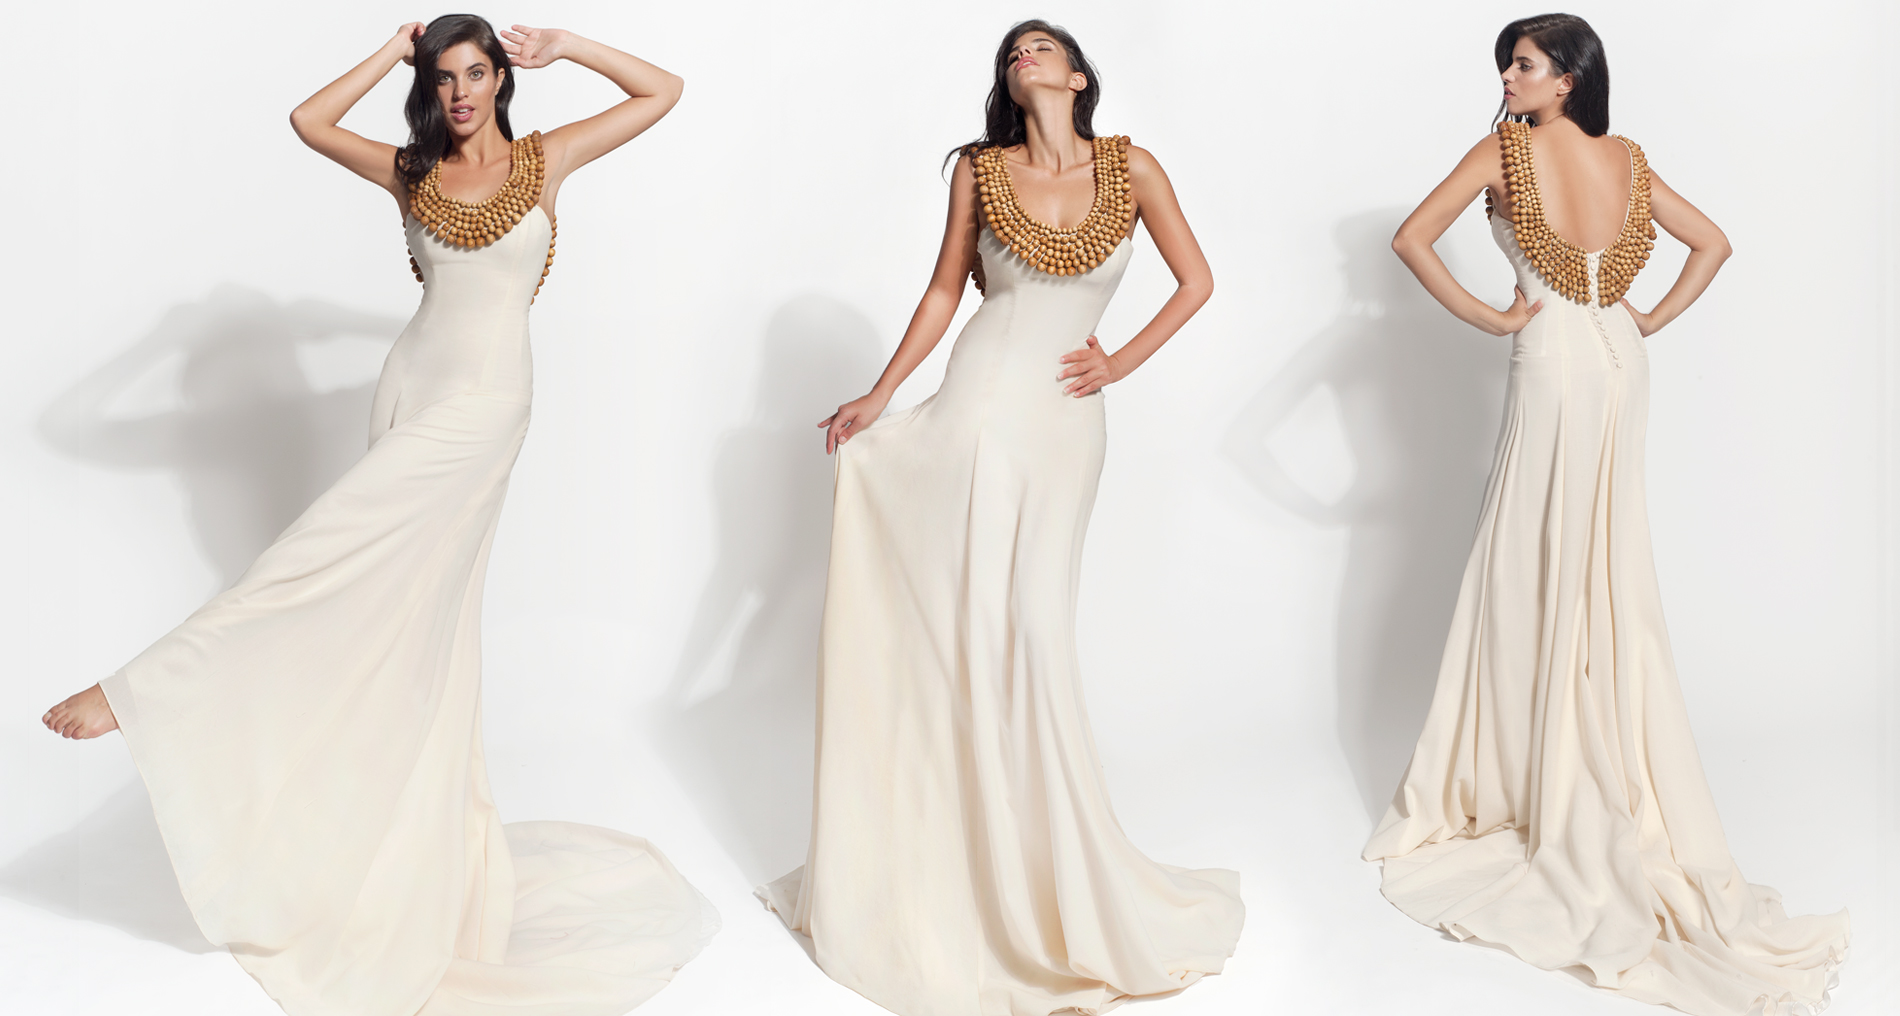 Rochia wedding dress from  Hellenic Vintage Core Collection